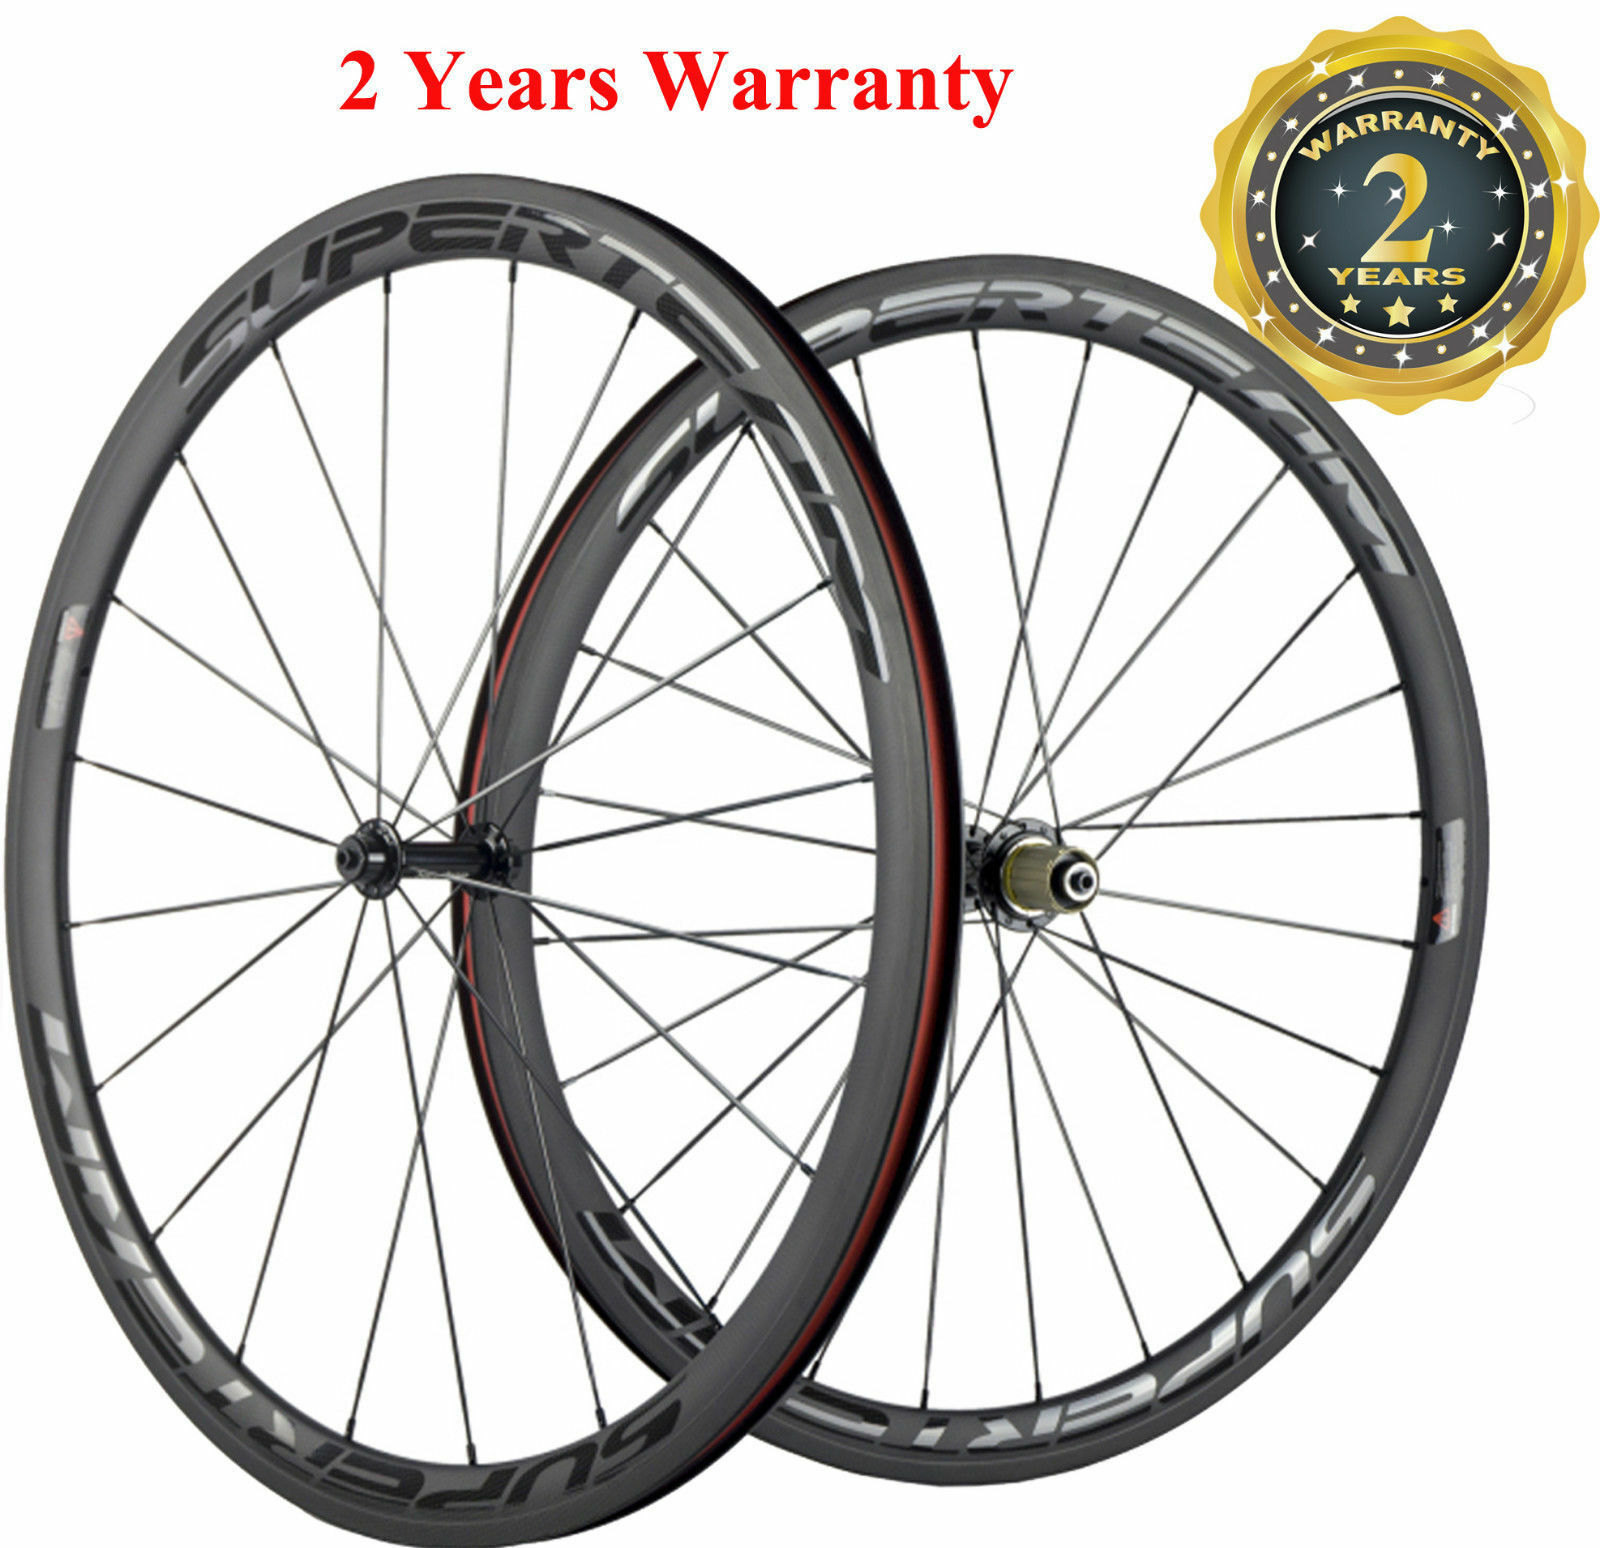 38mm Clincher Road Bike Wheels Bicycle Wheelset Transparent Decal 700C Touring